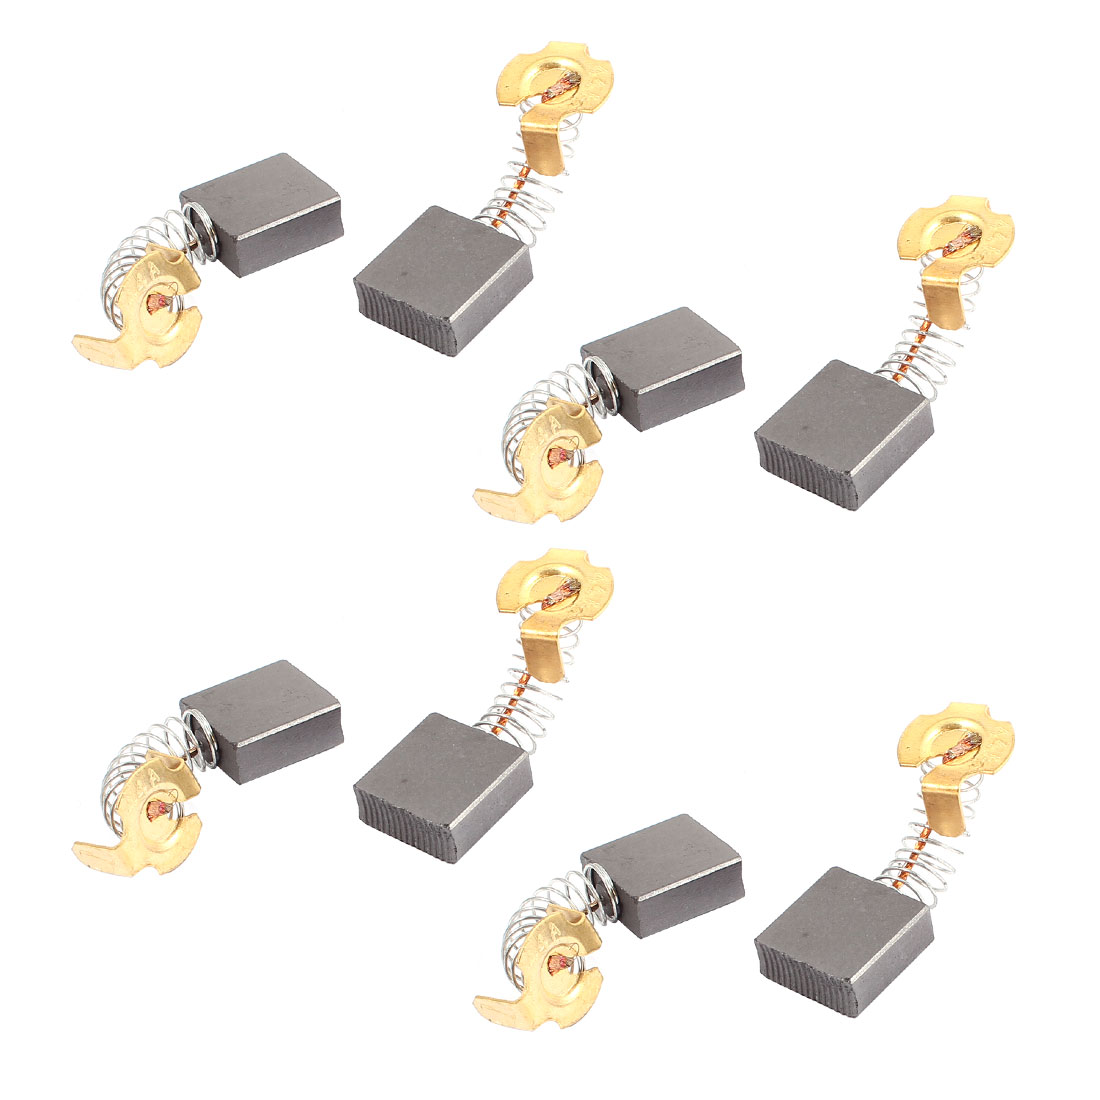 8 Pcs Replacement Electric Motor Carbon Brushes 17mm x 17mm x 7mm for Motors